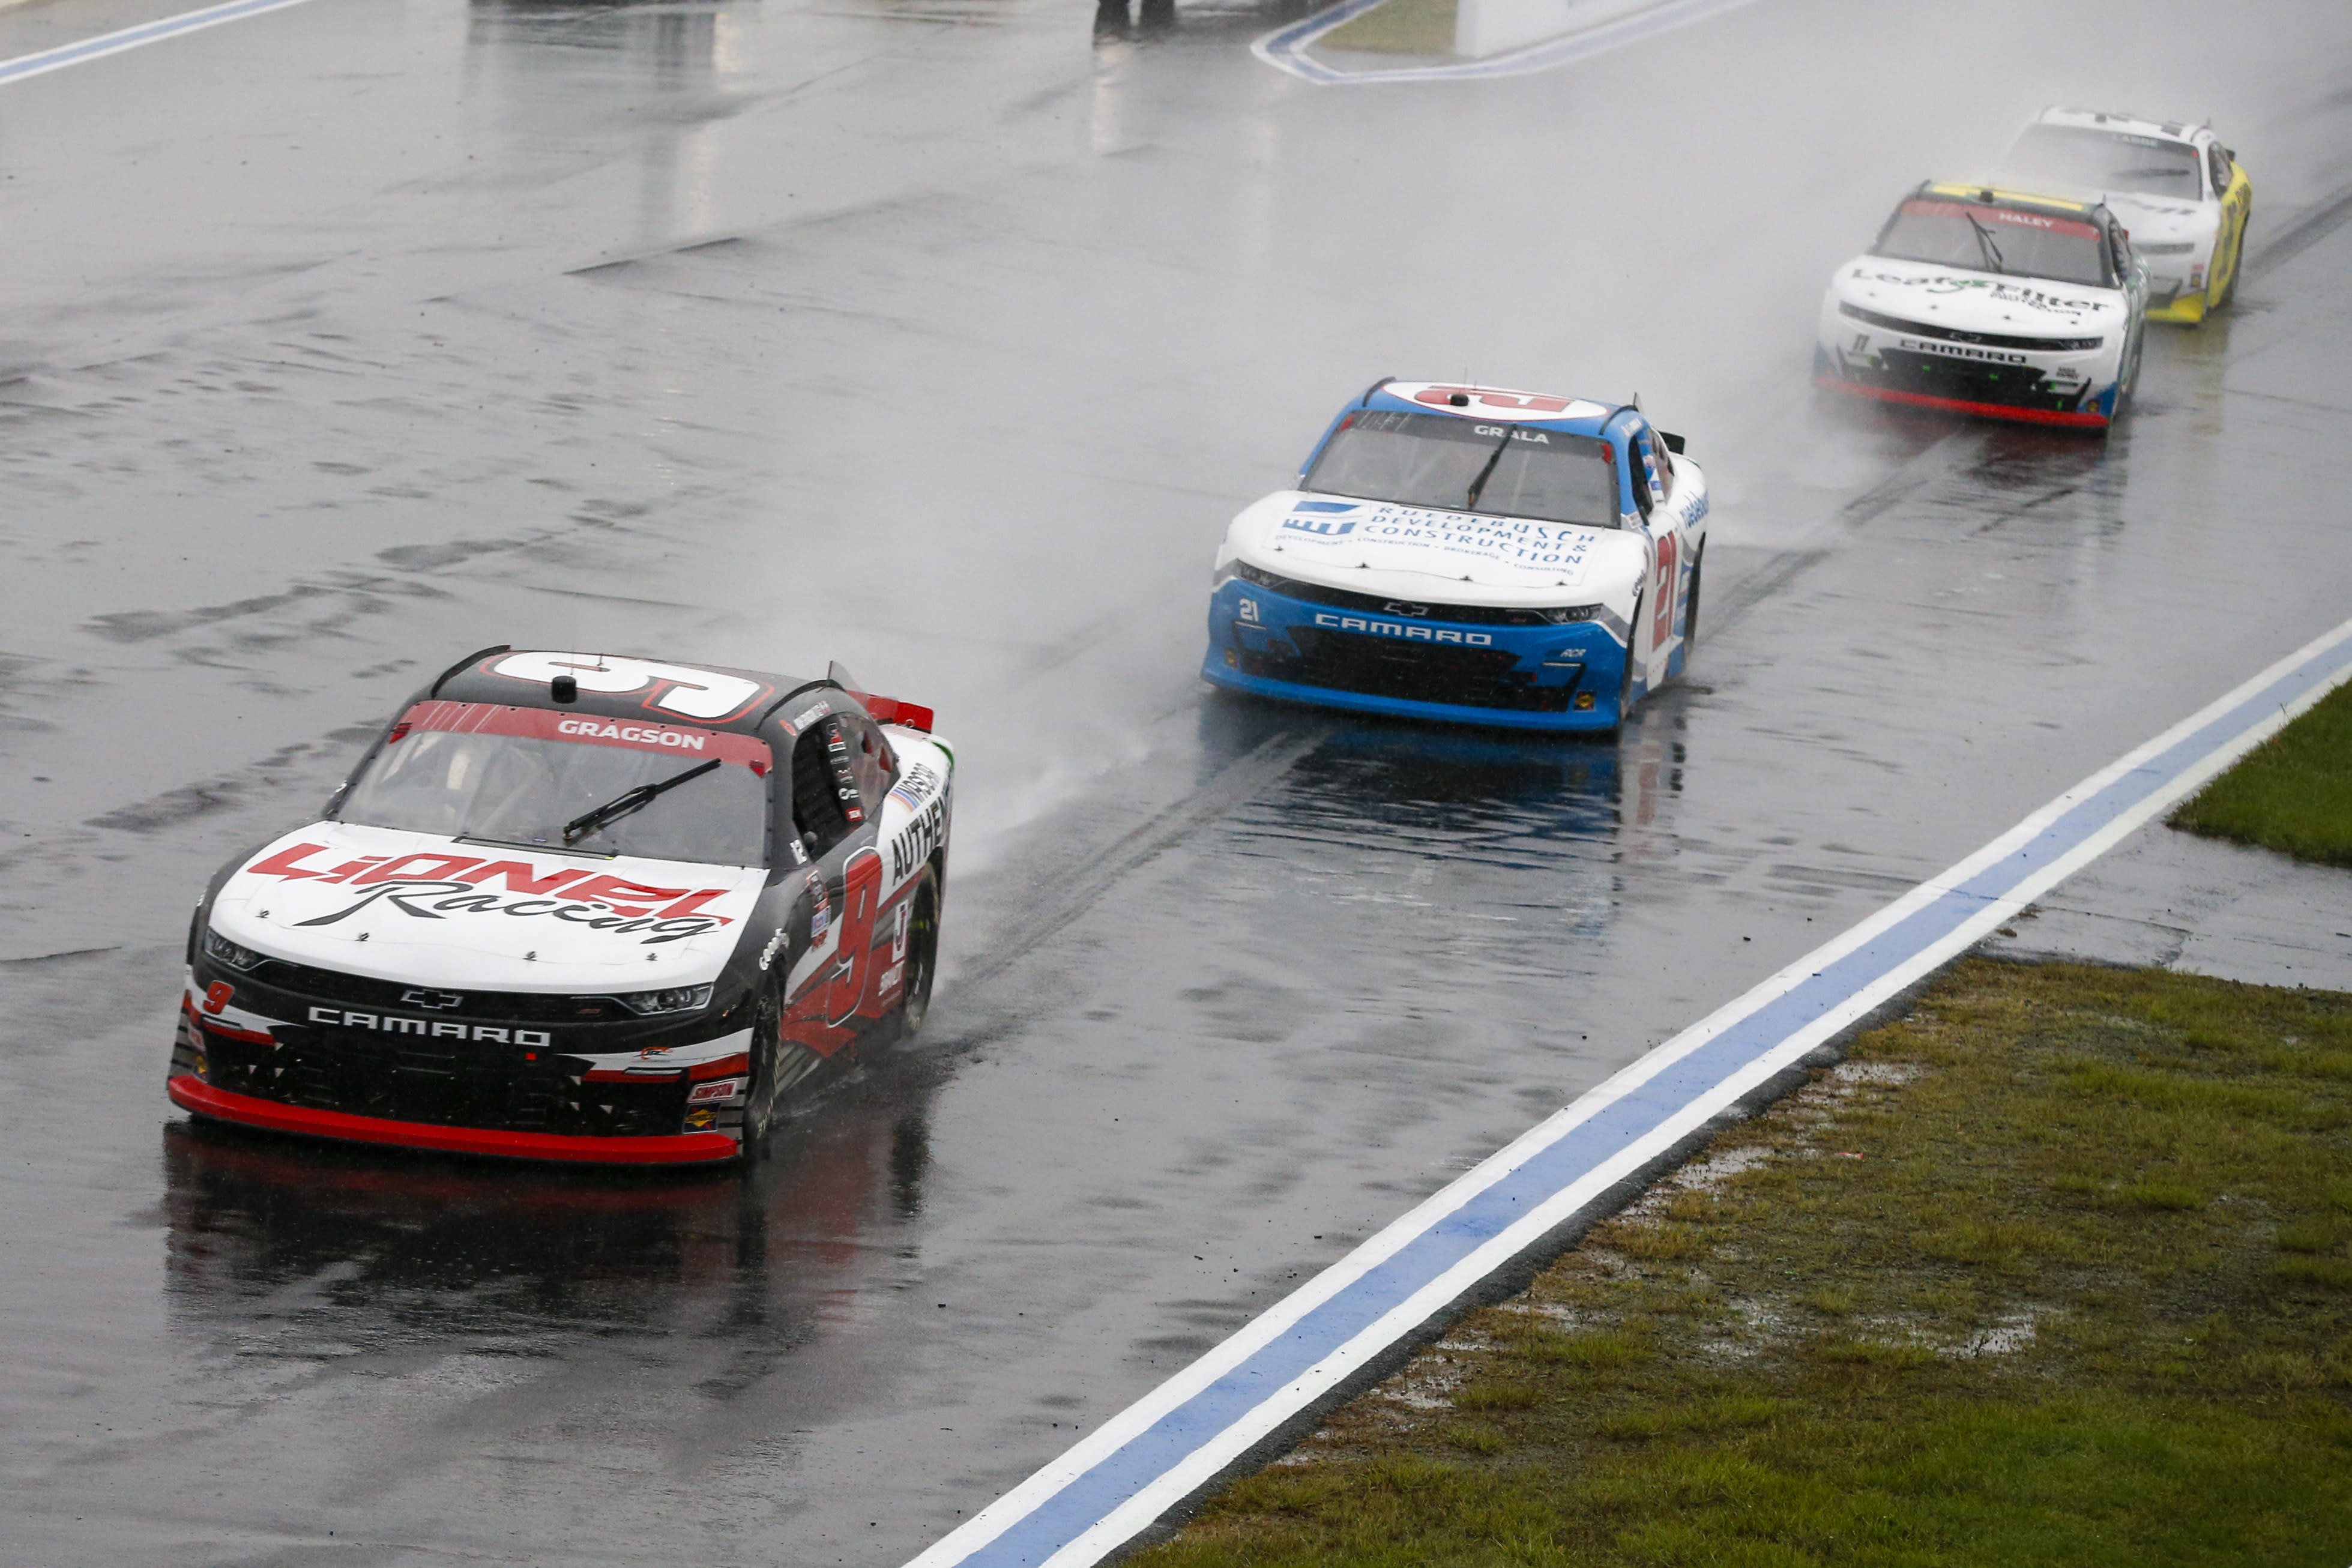 Noah Gragson (9) leads the way as drivers compete in the rain during a NASCAR Xfinity Series auto race at Charlotte Motor Speedway in Concord, N.C., Saturday, Oct. 10, 2020. (AP Photo/Nell Redmond)